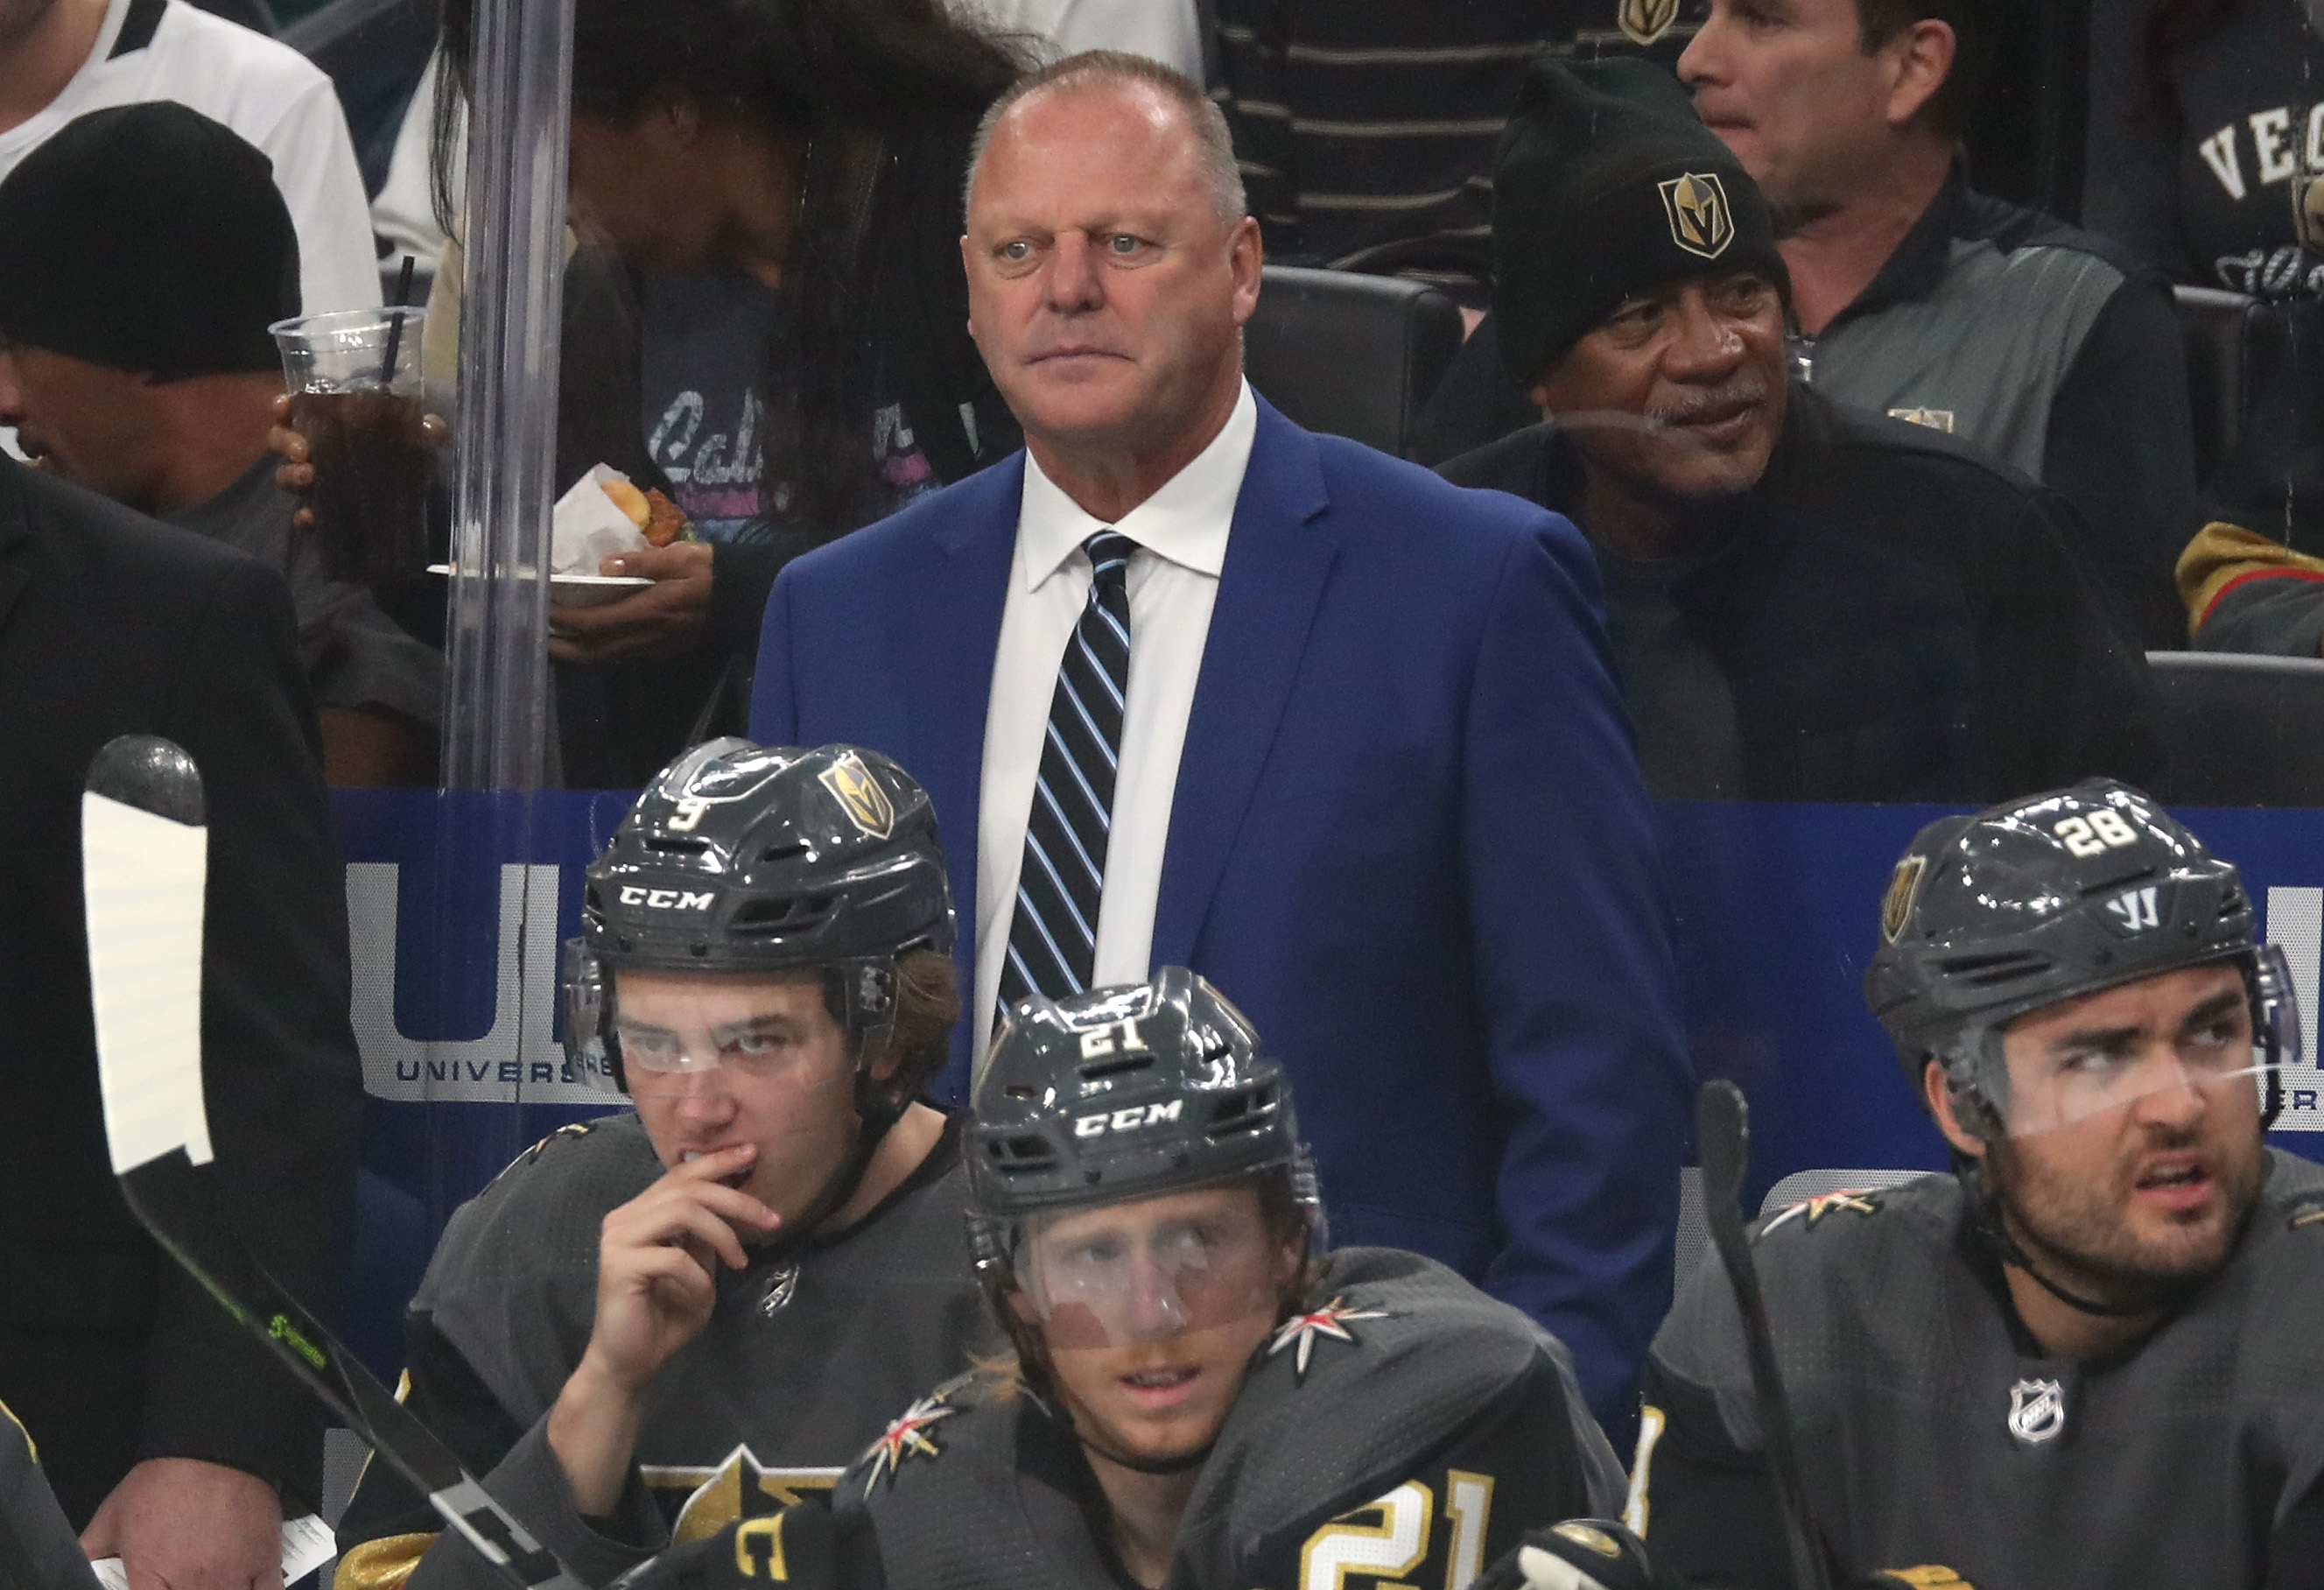 Gerard Gallant on coaching future: 'I'm far from done'